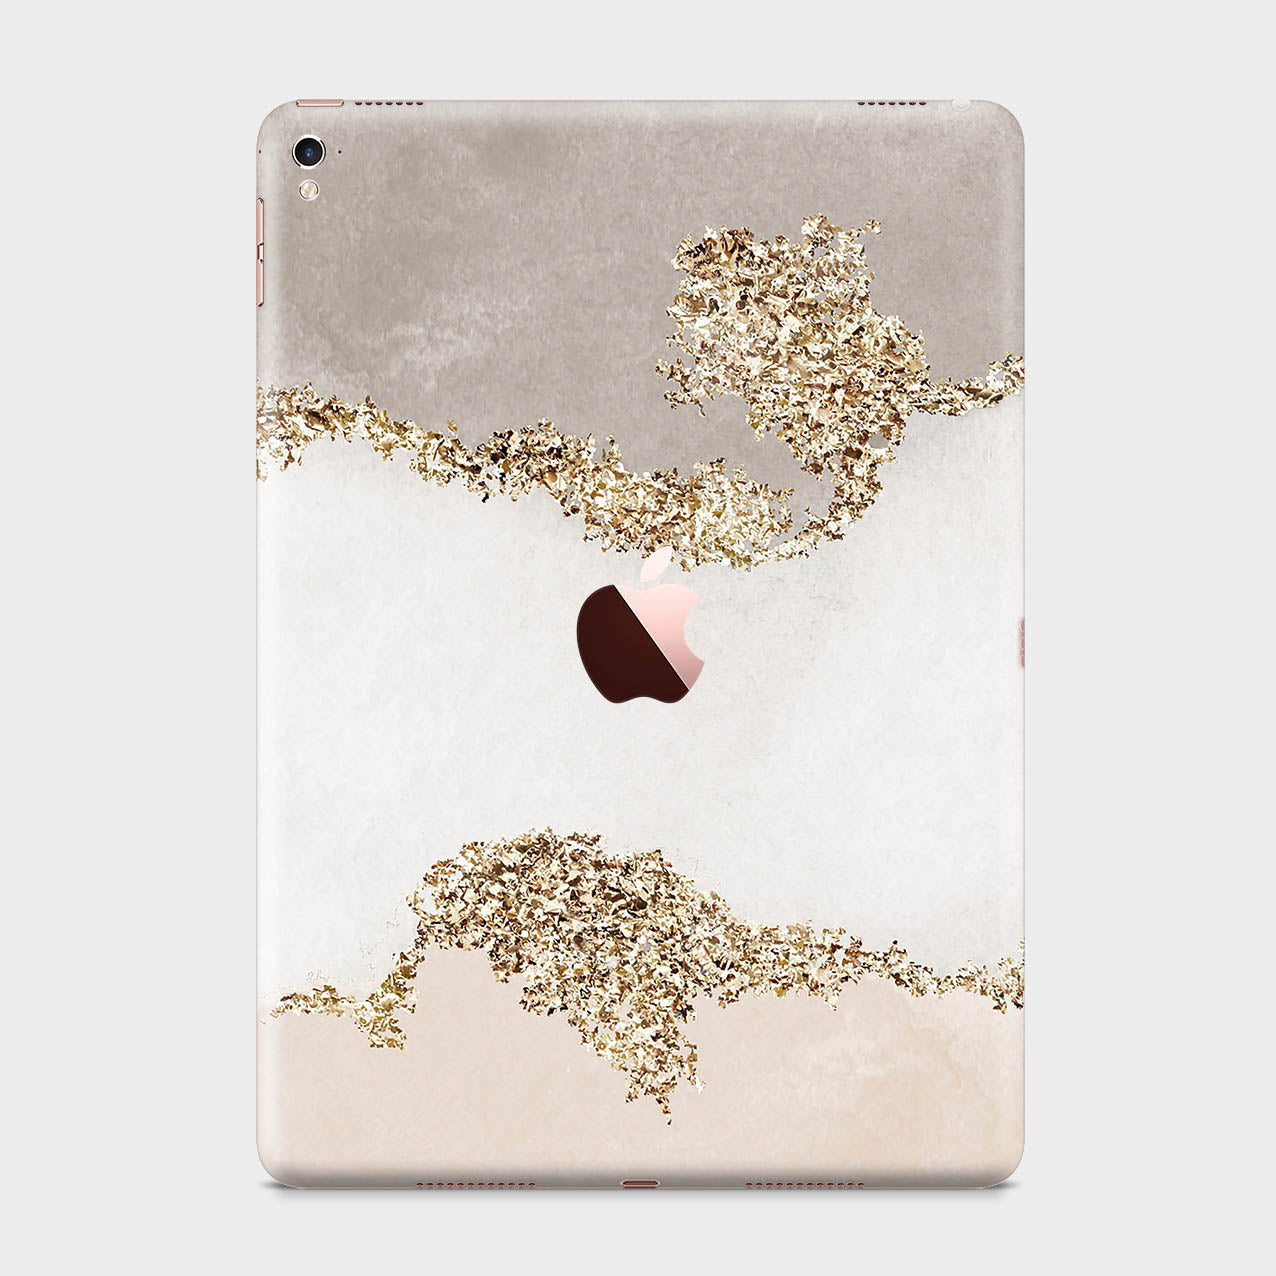 GOLDEN COAST iPad Mini 4 skins | Pigtou